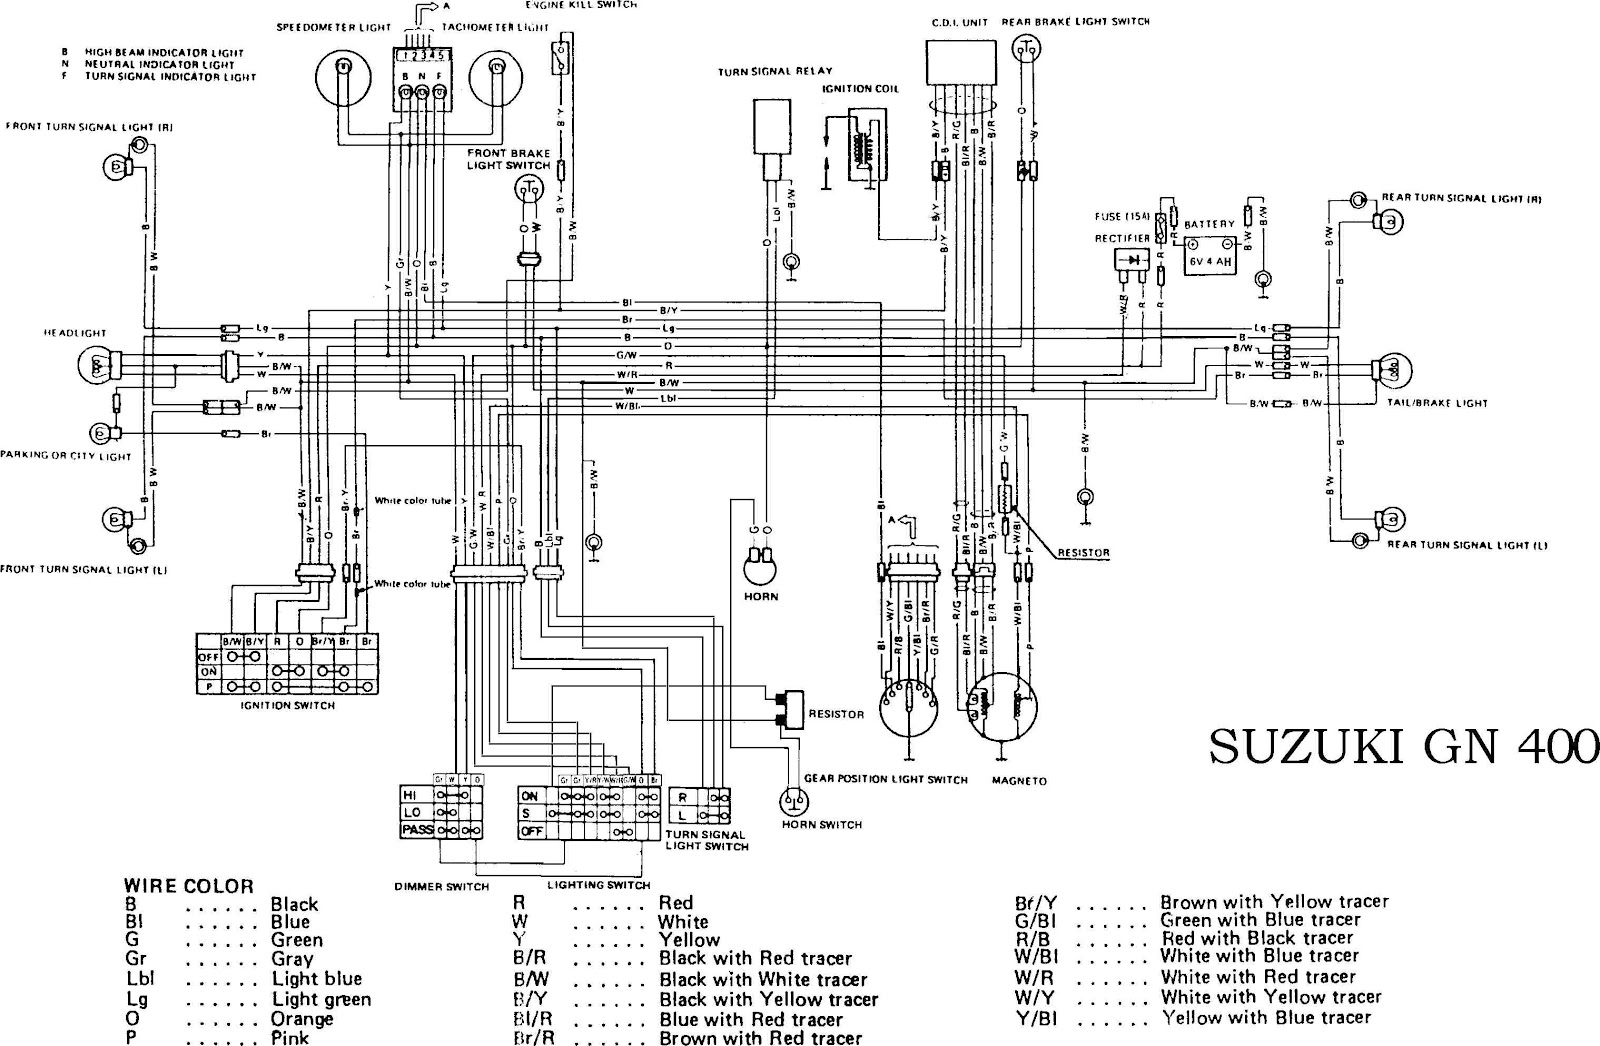 signal light wiring diagram